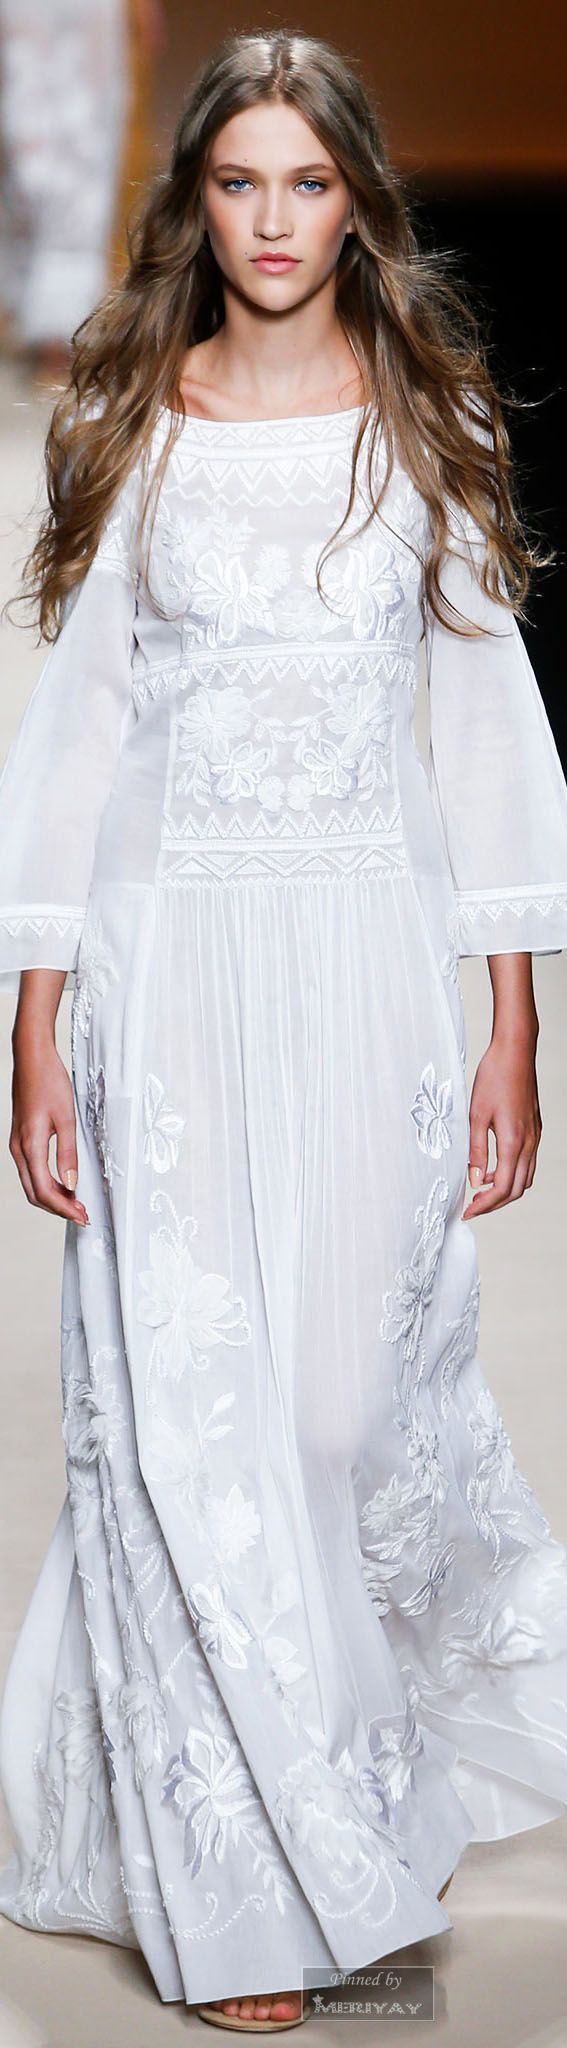 Alberta Ferretti Spring-summer 2015 ... white maxi dress ... Bohemian boho wedding gown